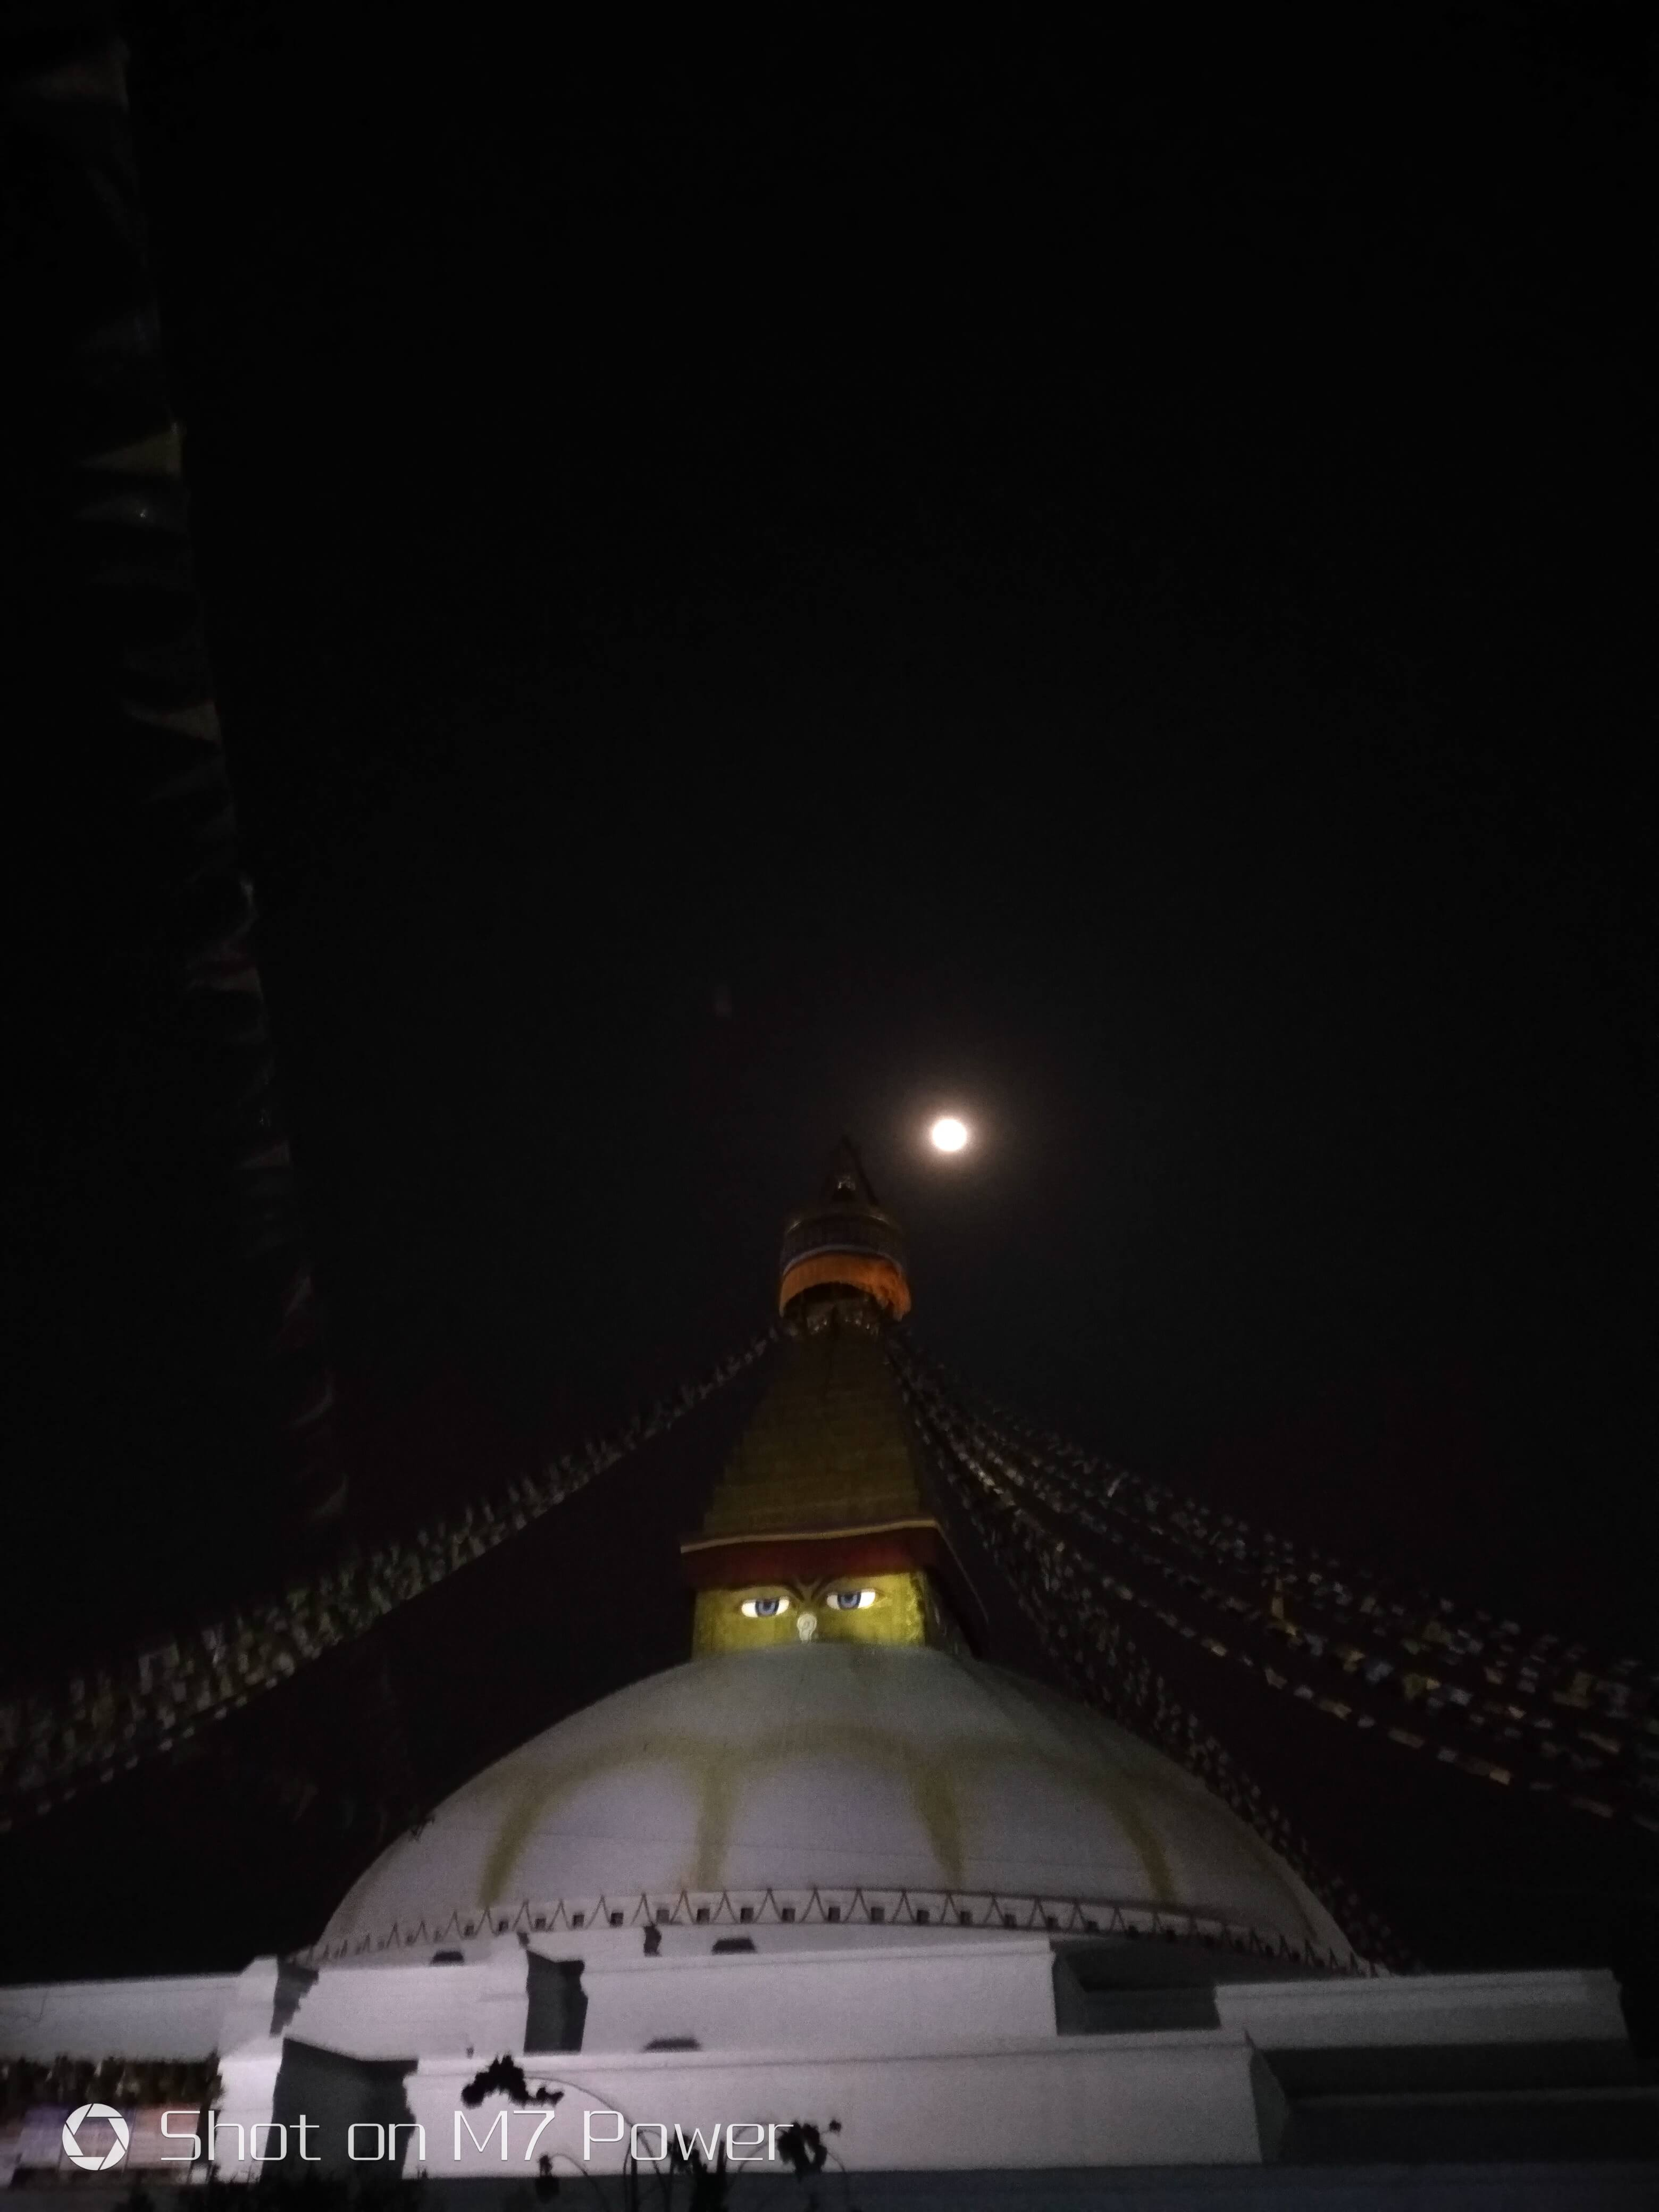 gionee m7 power review night time picture